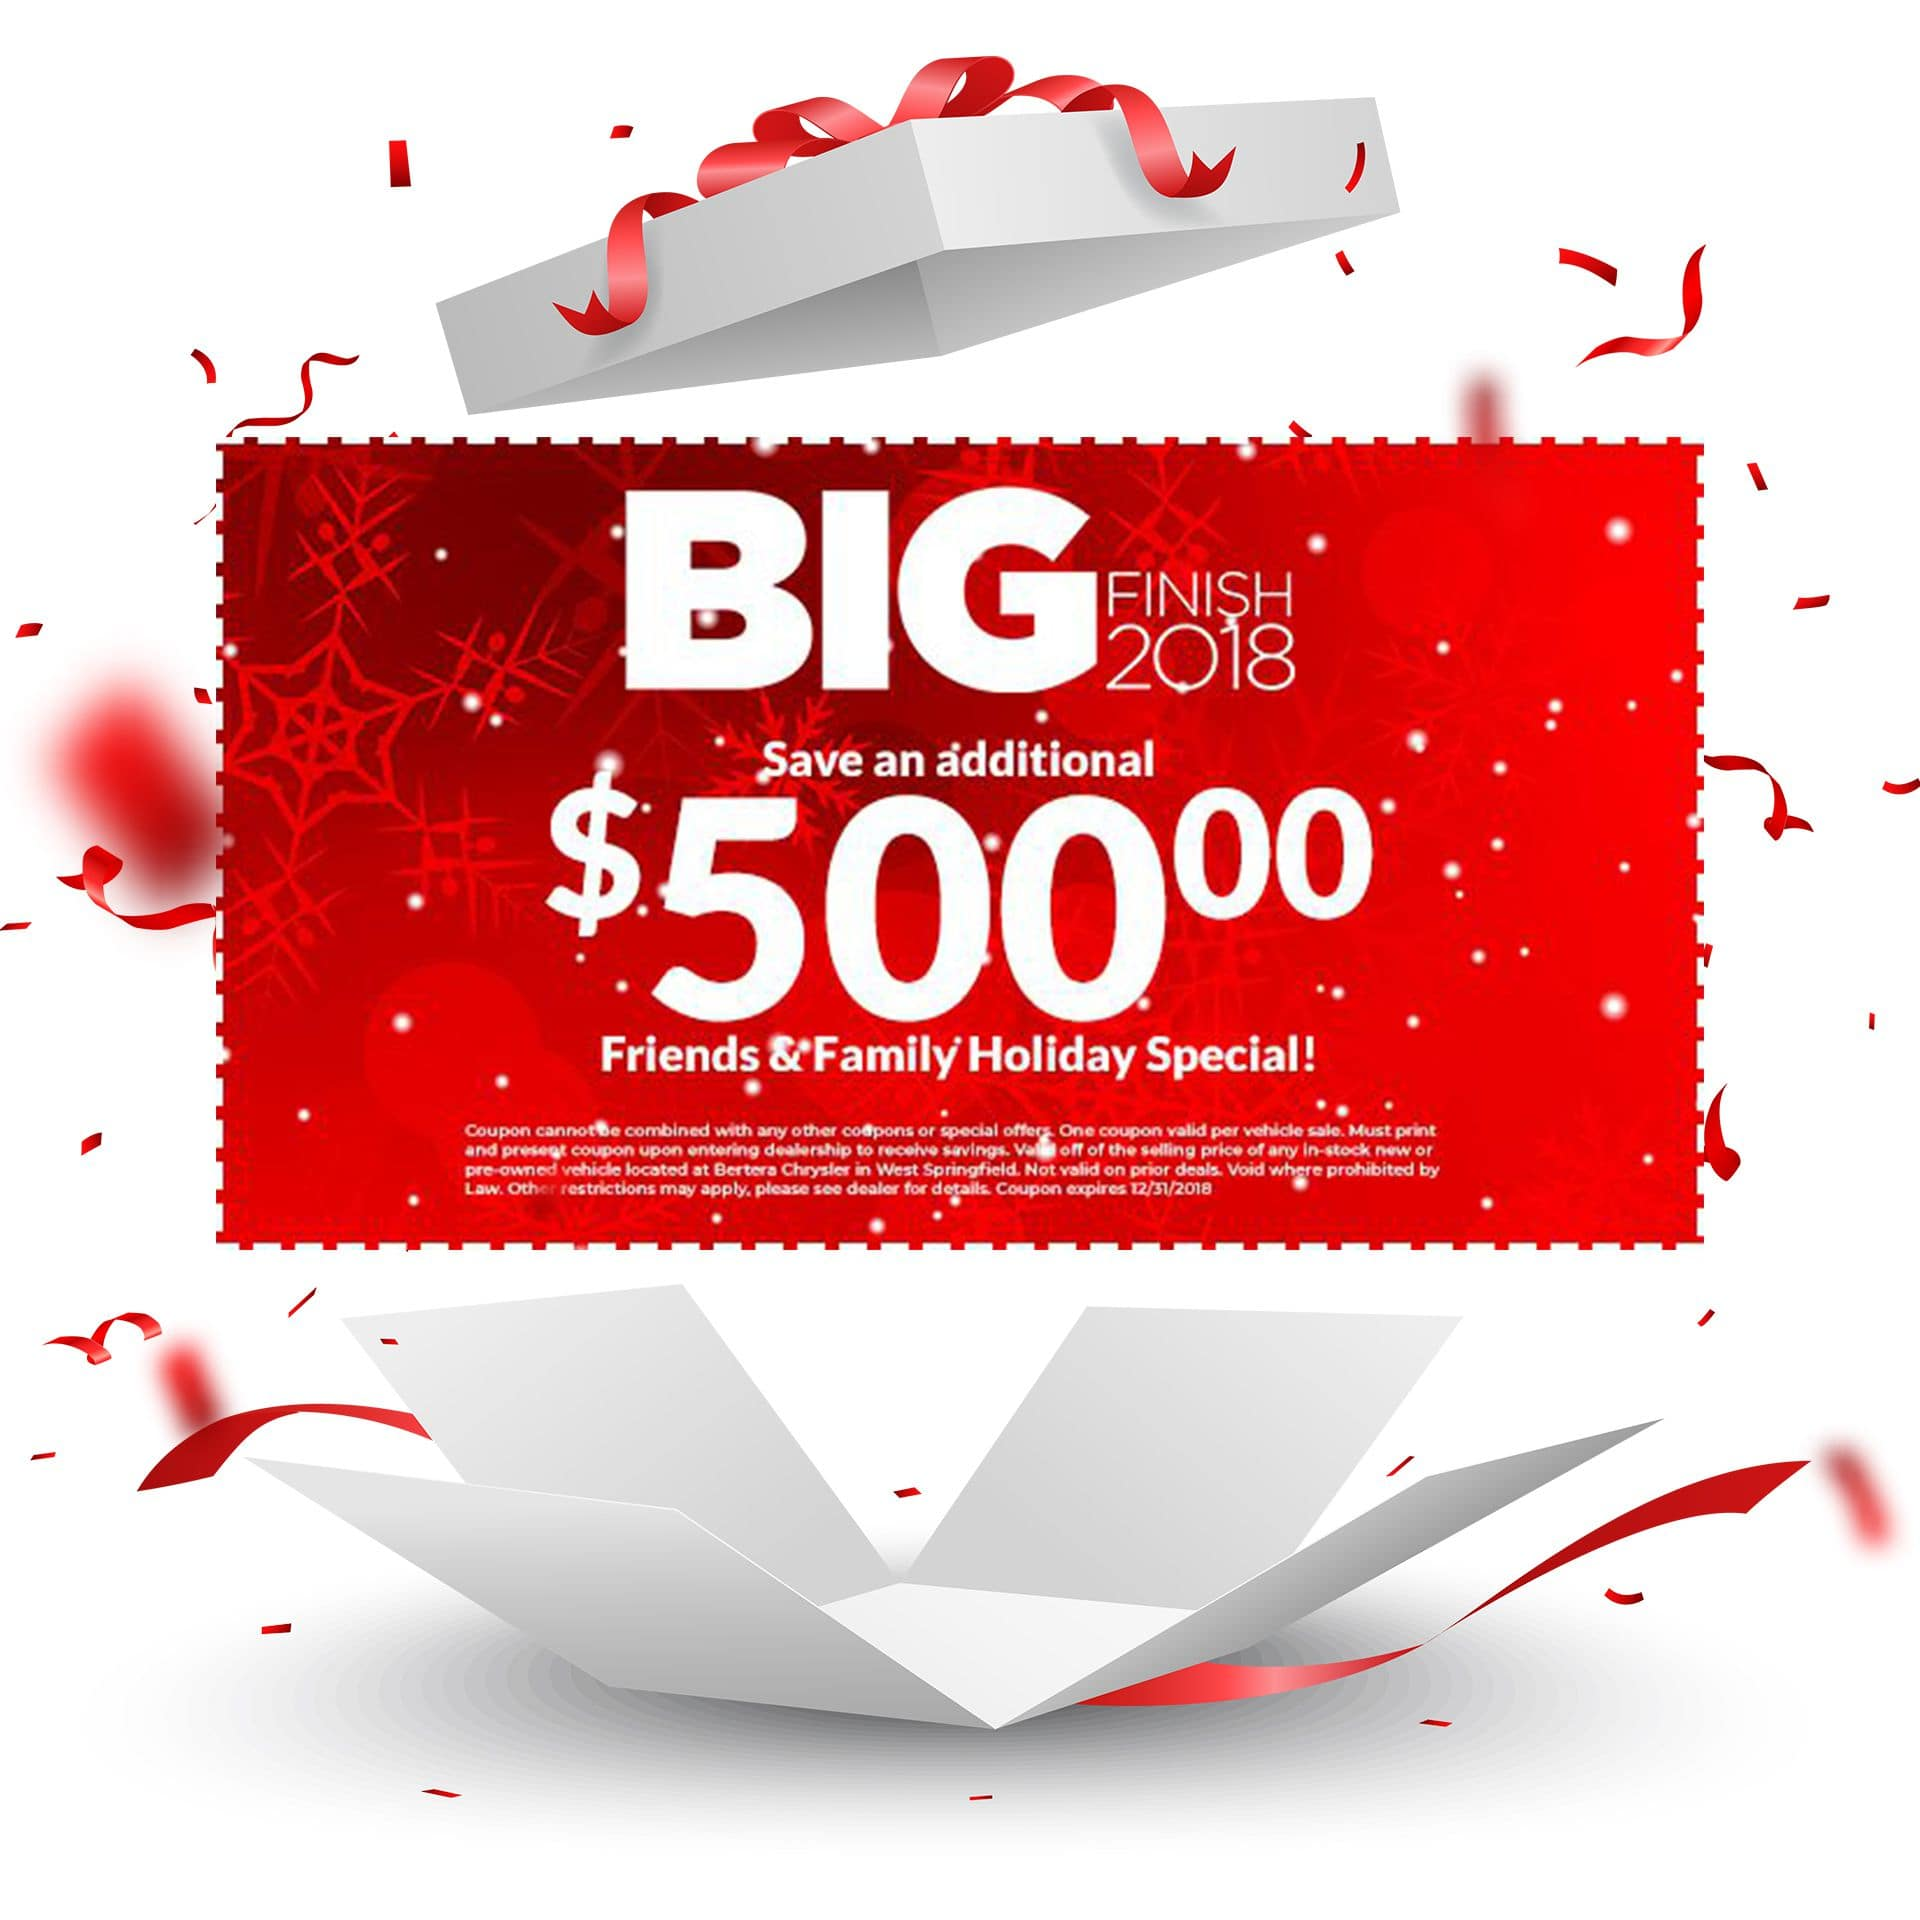 Big Finish 2018 $500 Friends and Family Holiday Special ...